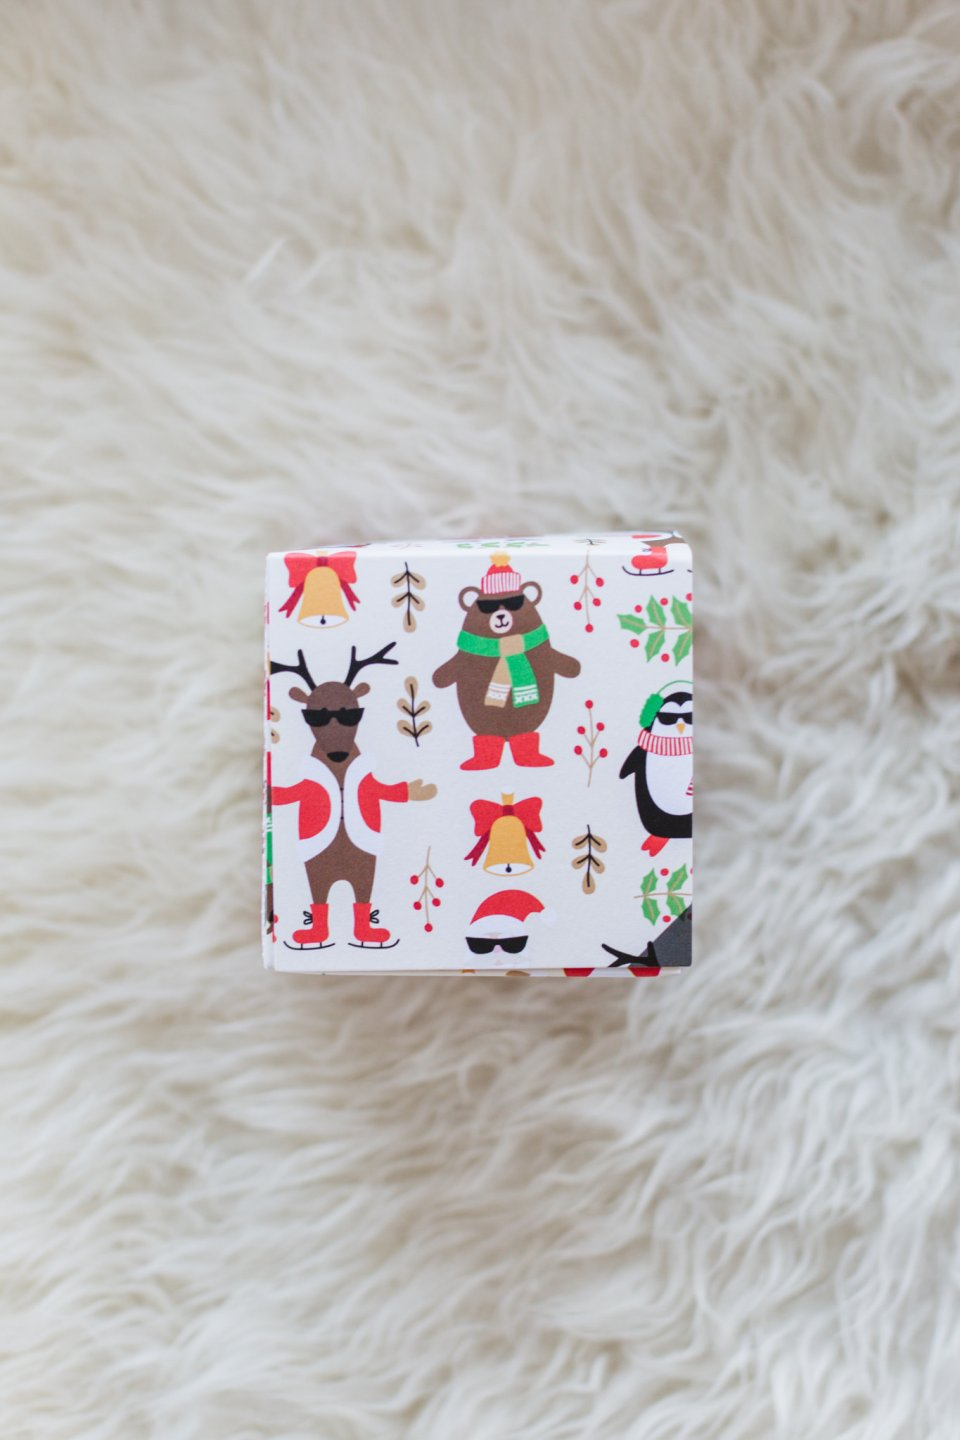 Greetabl's holiday gift ideas 2020 - preview of the box designs and gifts available for affordable client gifting this holiday season